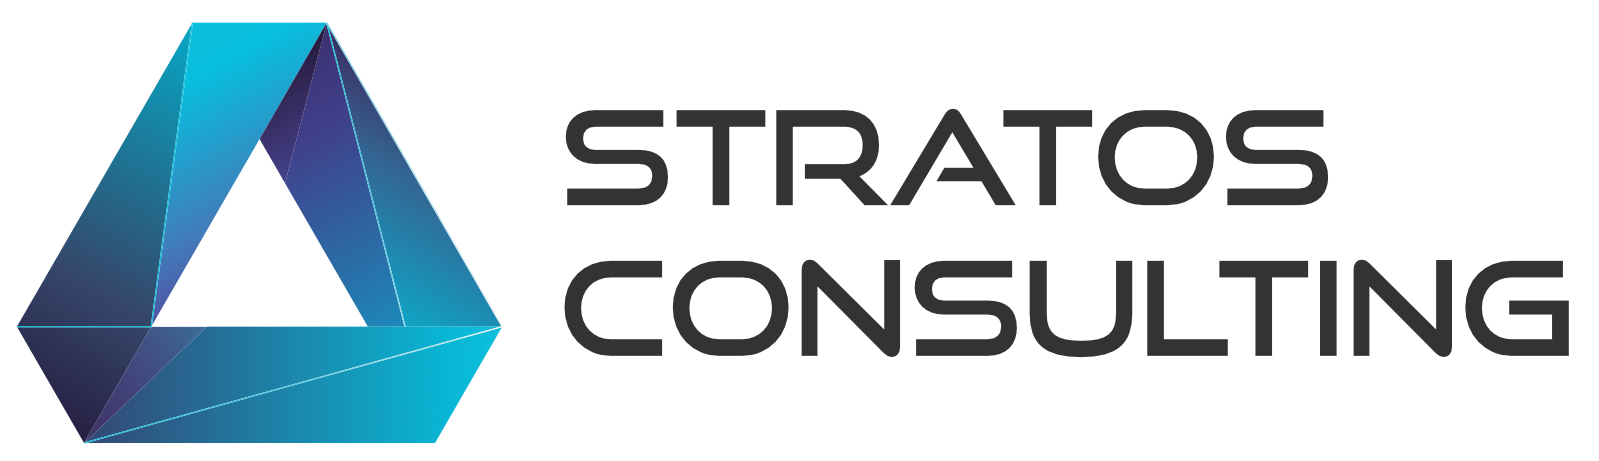 Stratos Consulting